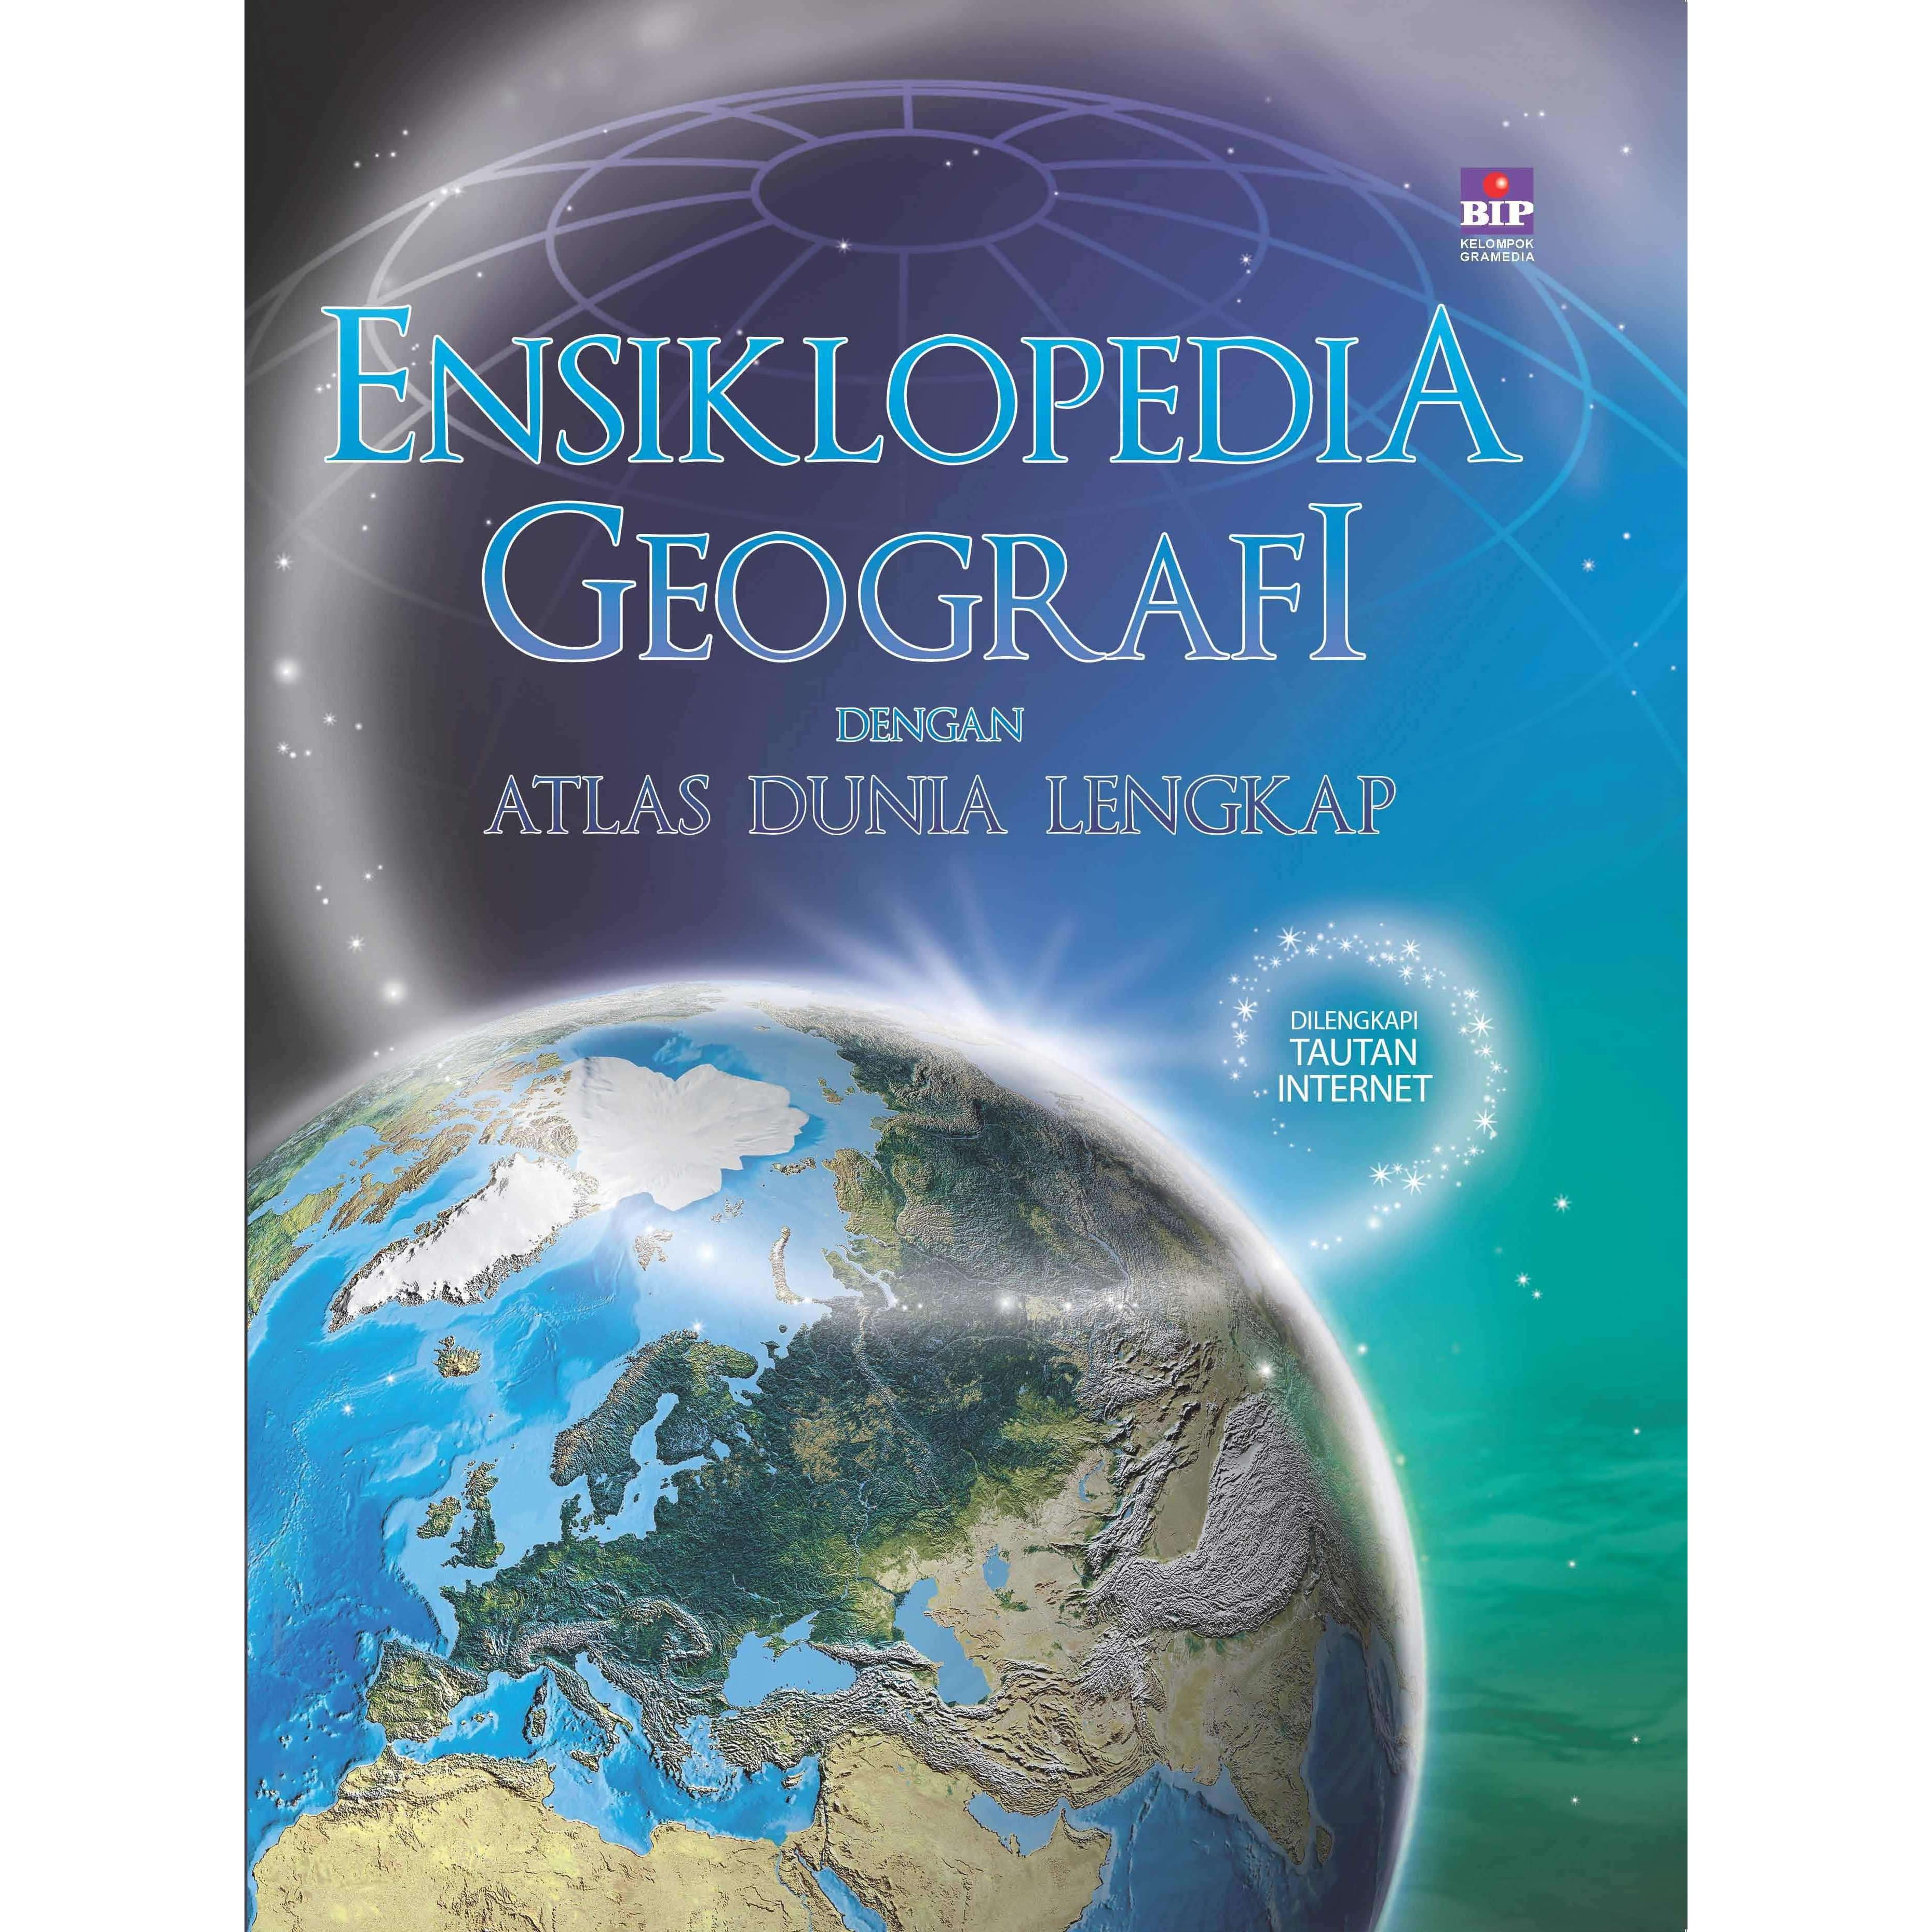 Dunia download ebook ensiklopedia